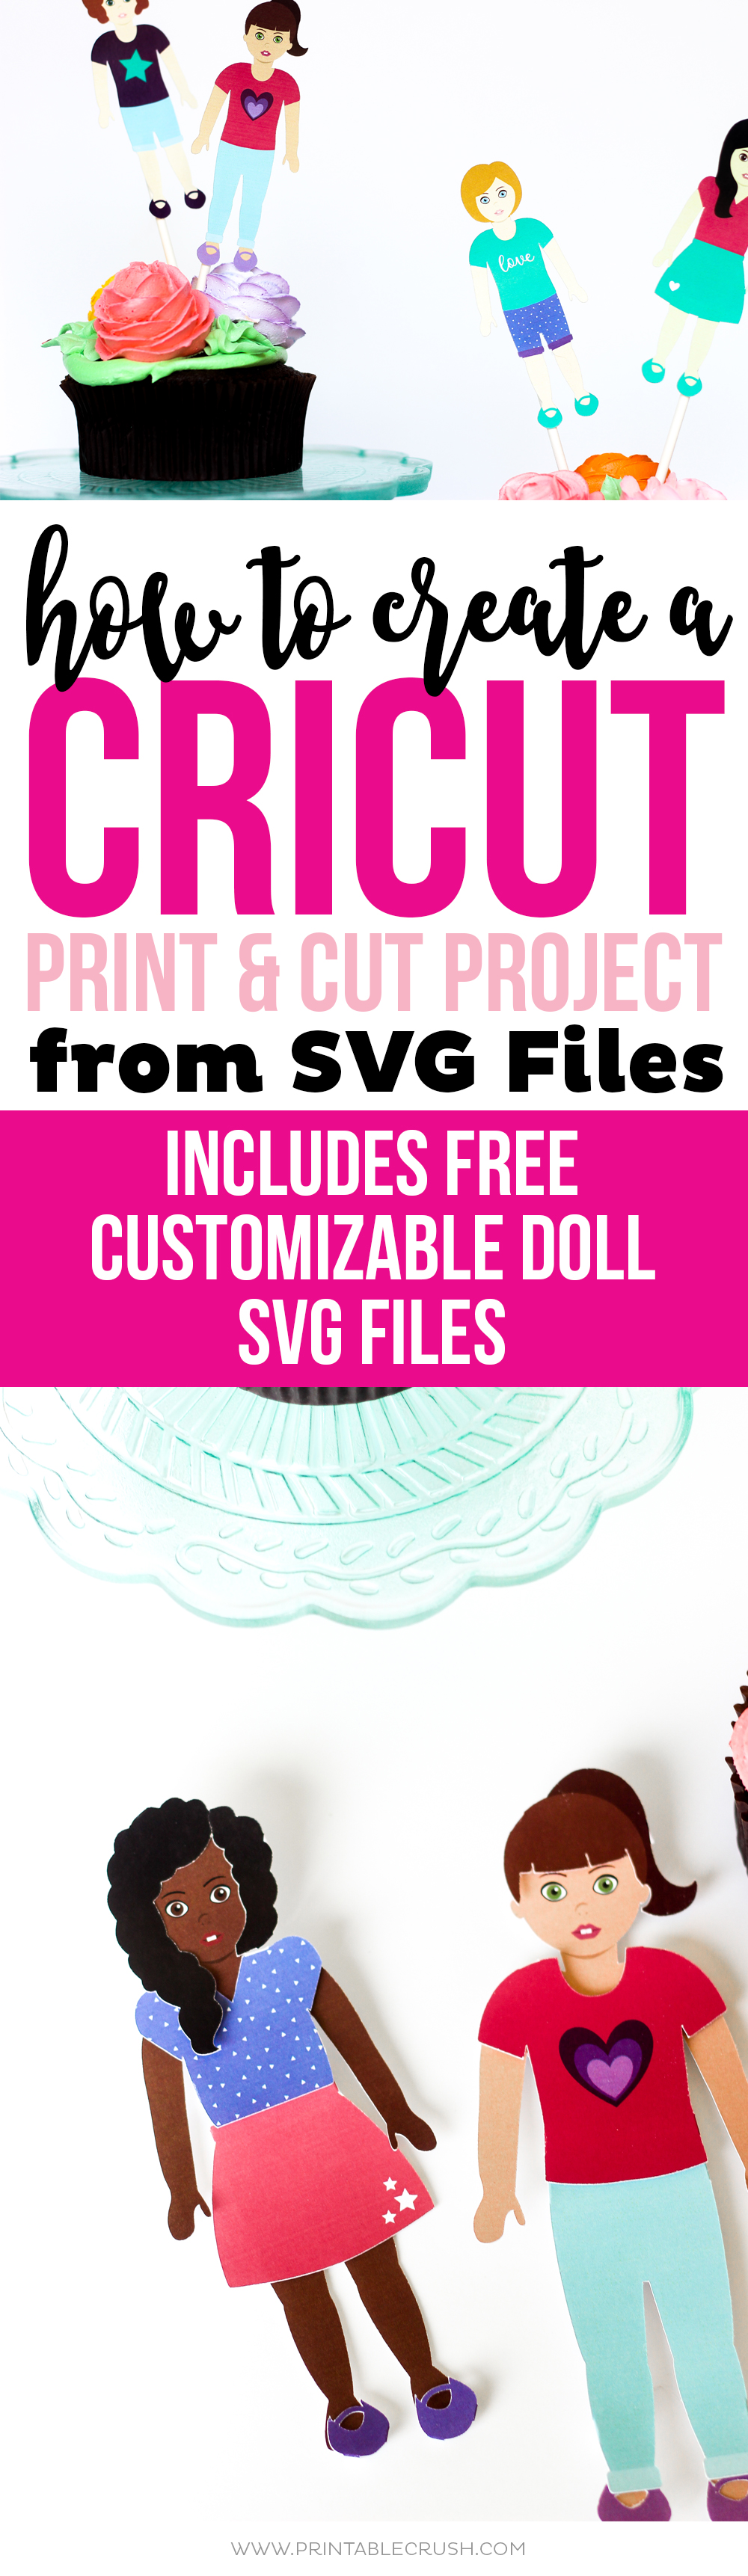 Did you know you can create a Cricut Print and Cut Project from SVG files? See how I made these cute American Girl Printable cupcake toppers and paper dolls using this method!